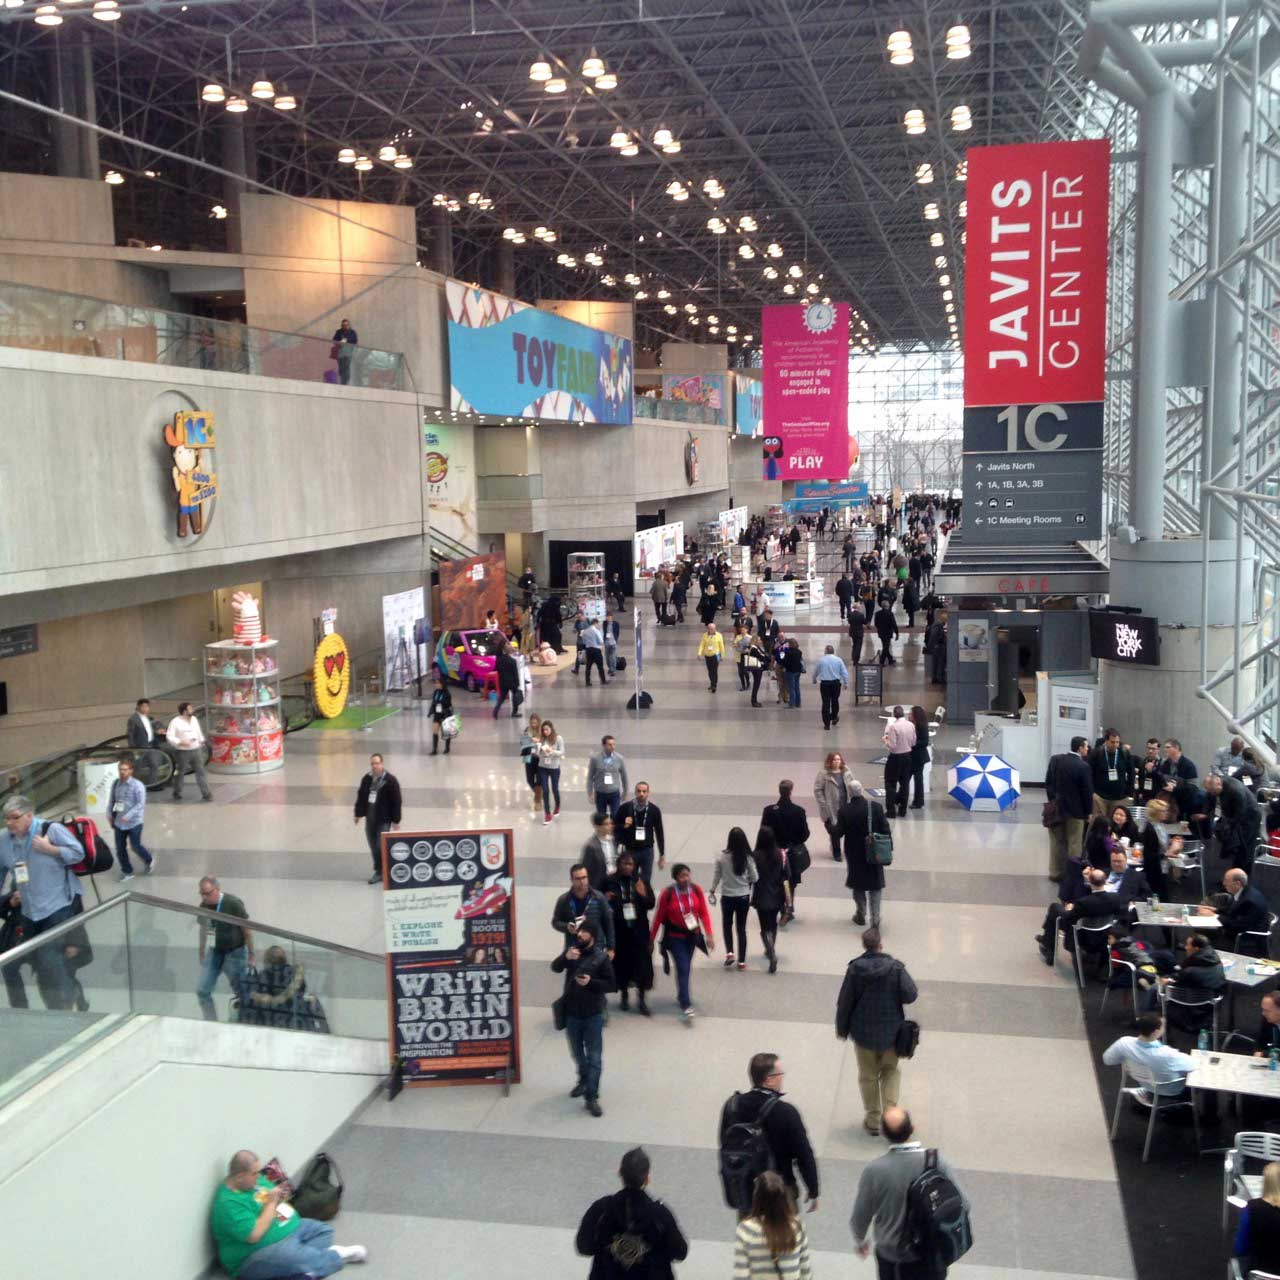 Toy Fair attendance is up compared to 2015